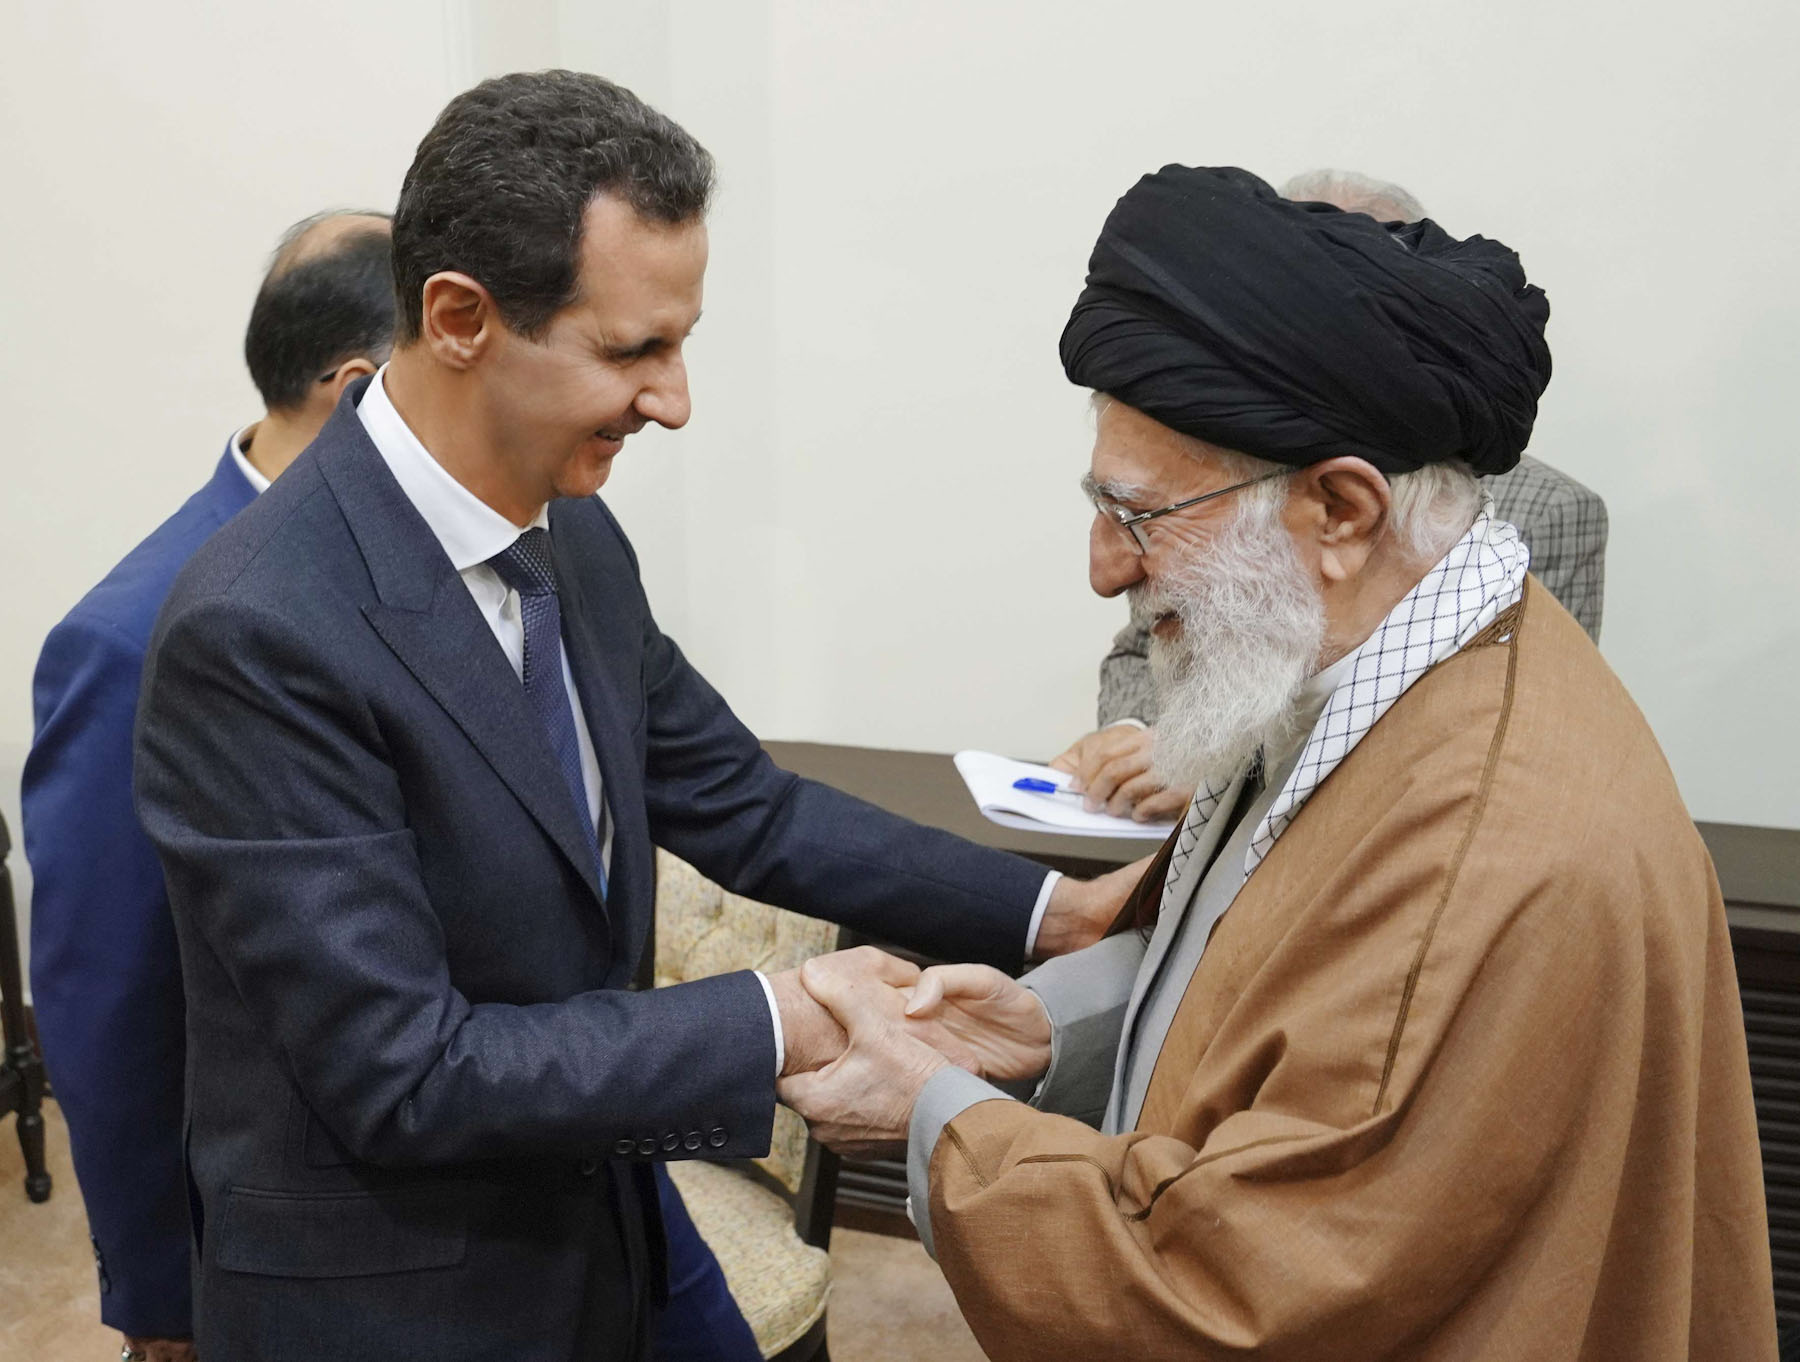 Syrian President Bashar Assad, left, shakes hands with Iranian Supreme Leader Ayatollah Ali Khamenei, before their meeting in Tehran, Syria, Monday, Feb. 25, 2019. (AP)